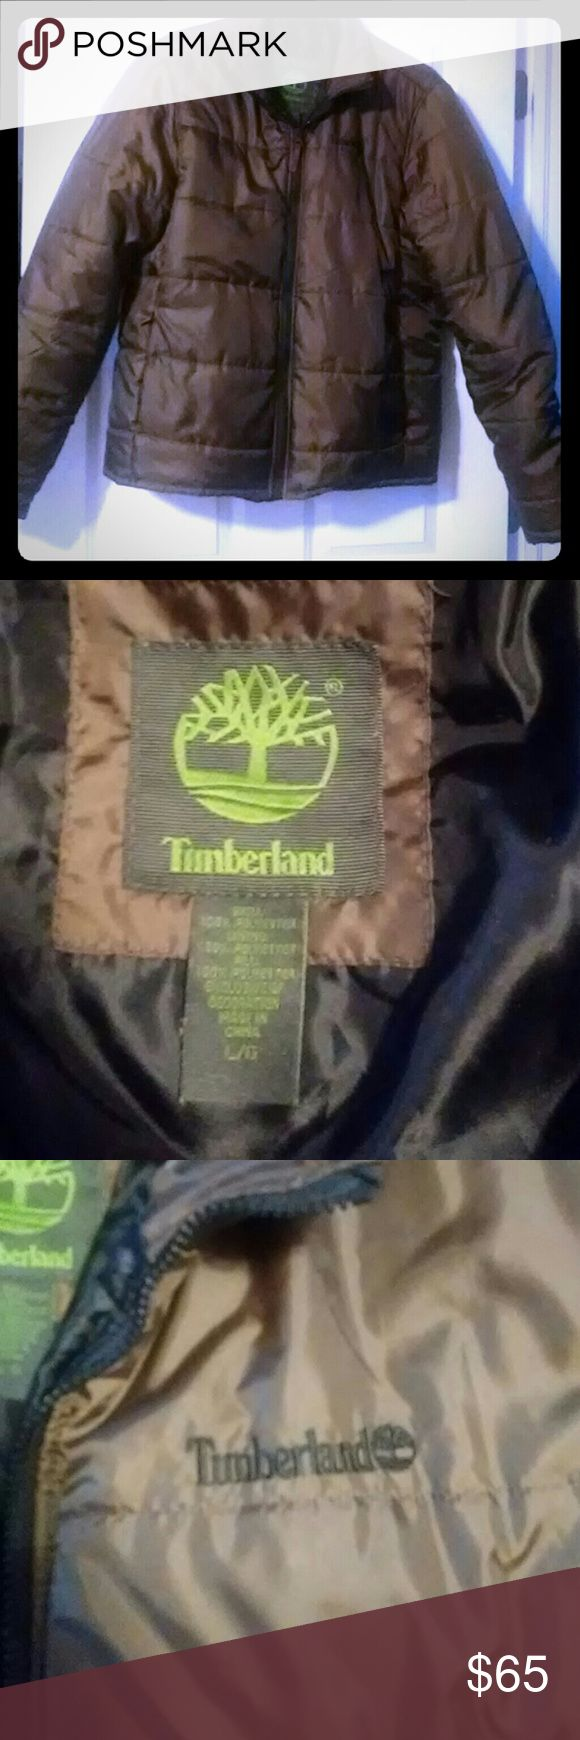 Timberland coat Never worn (received wrong size),  Timberland Coat. Willing to negotiate price Timberland Jackets & Coats Puffers